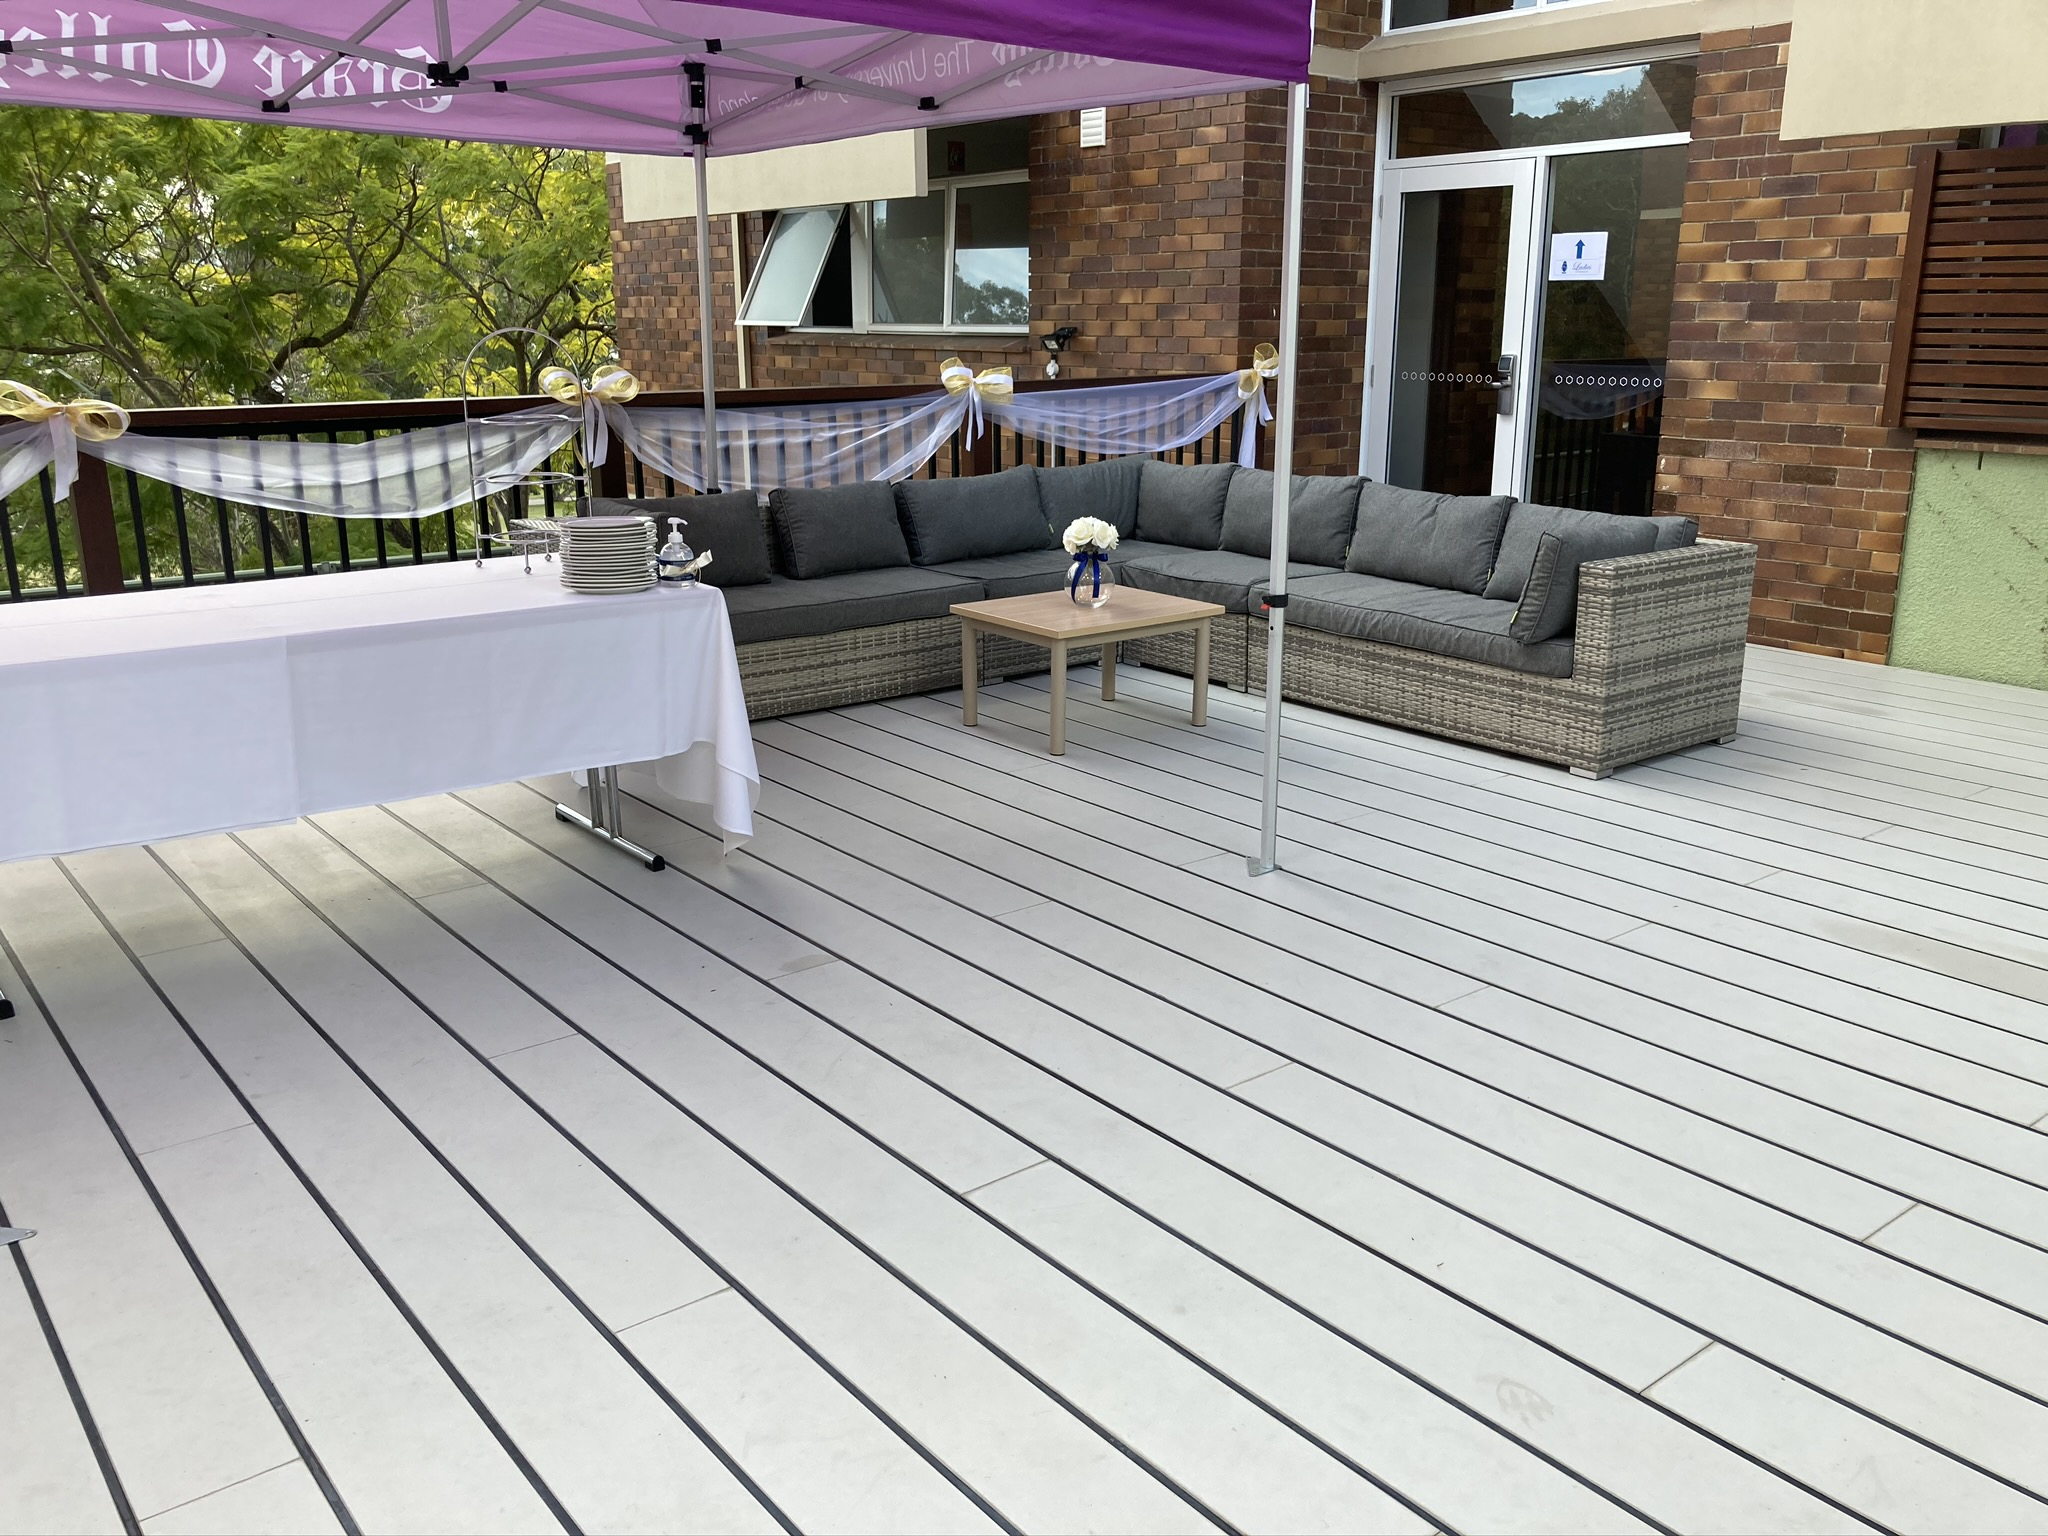 Fletcher side of deck set with lounge